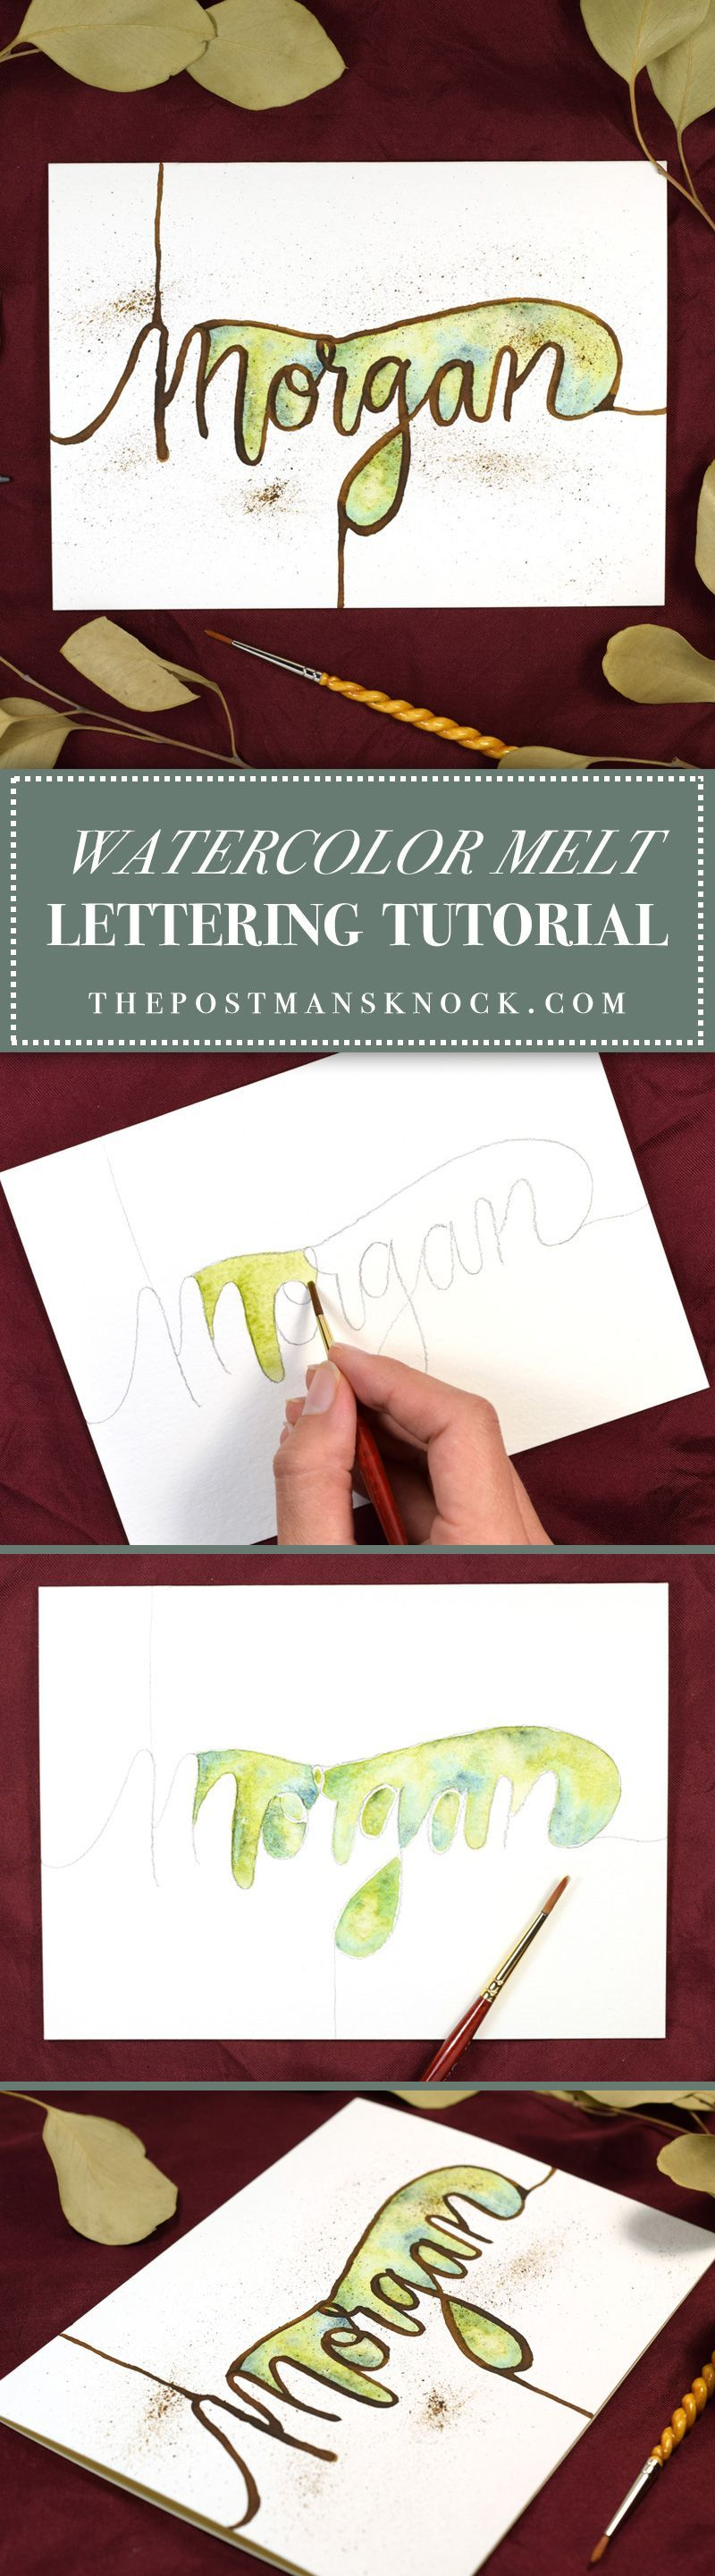 Watercolor Melt Lettering Tutorial The Postman's Knock